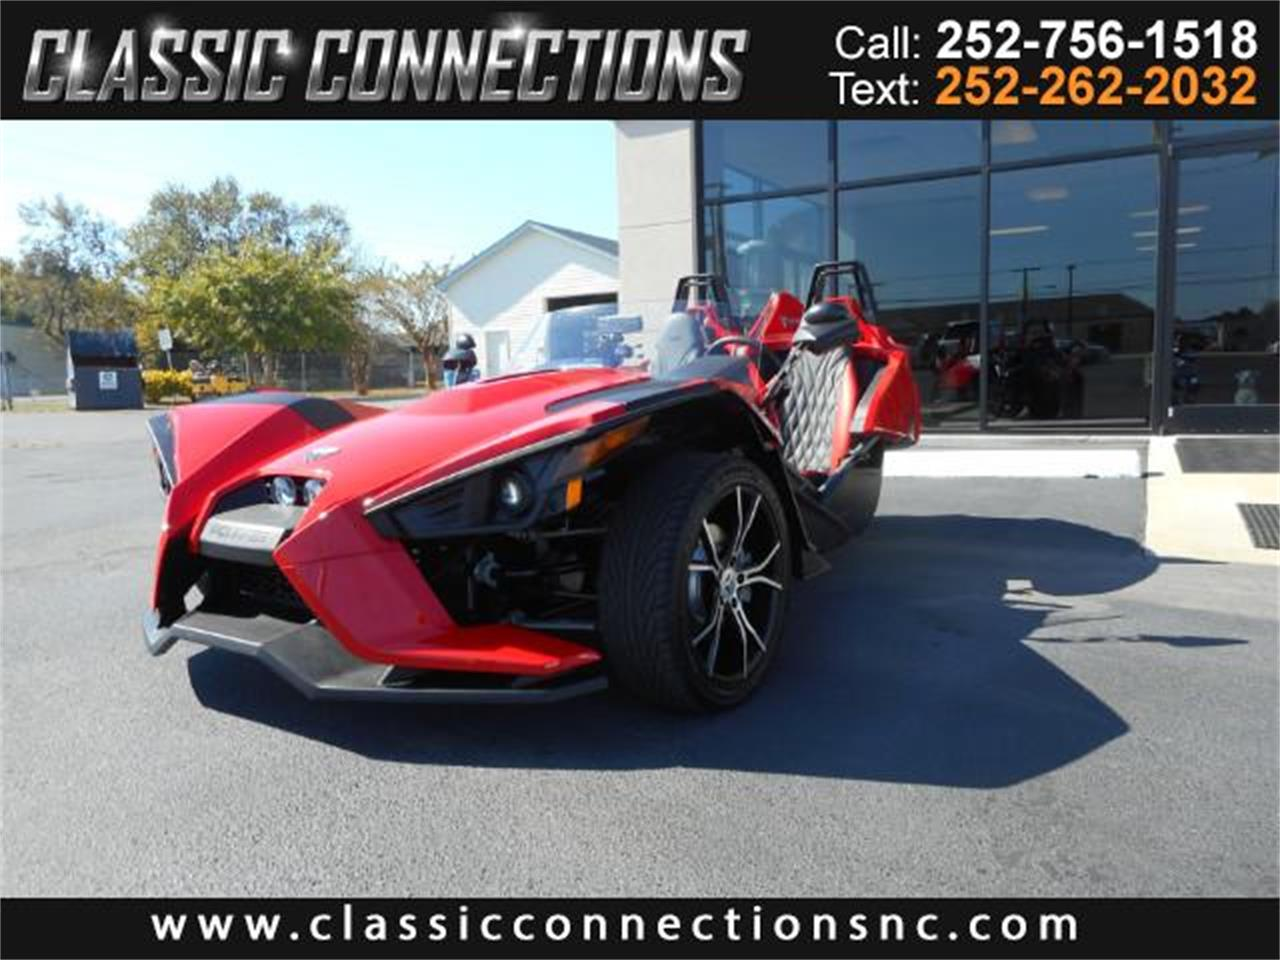 Large Picture of '15 Polaris Slingshot Offered by Classic Connections - JOAT